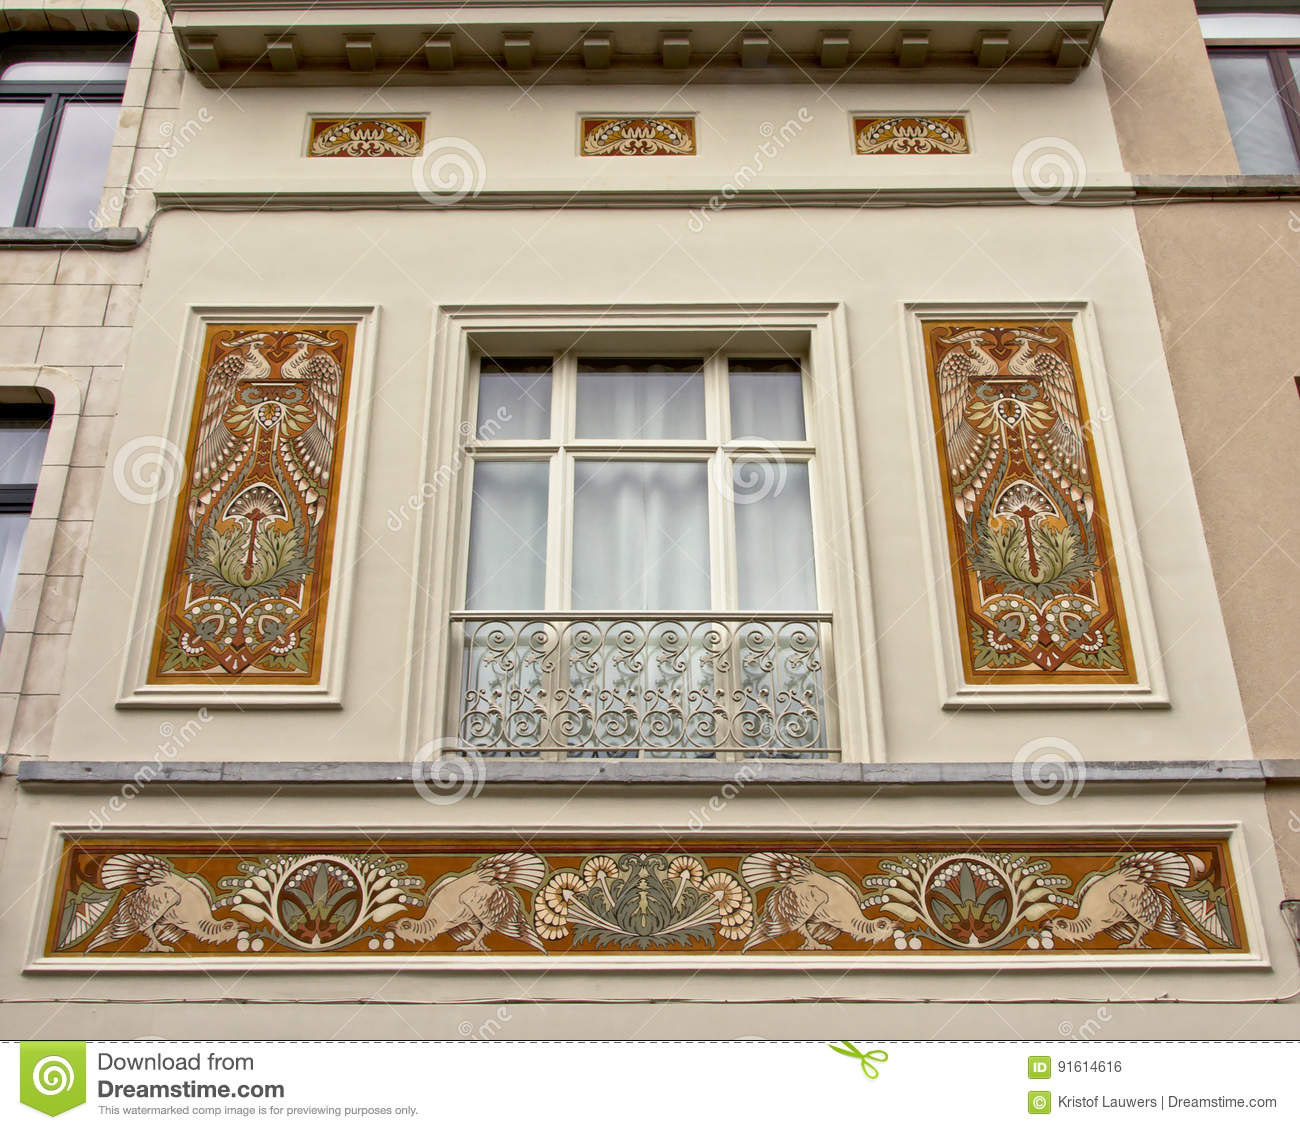 Décoration Art Nouveau House Facade With Art Nouveau Decoration Of Paradise Birds